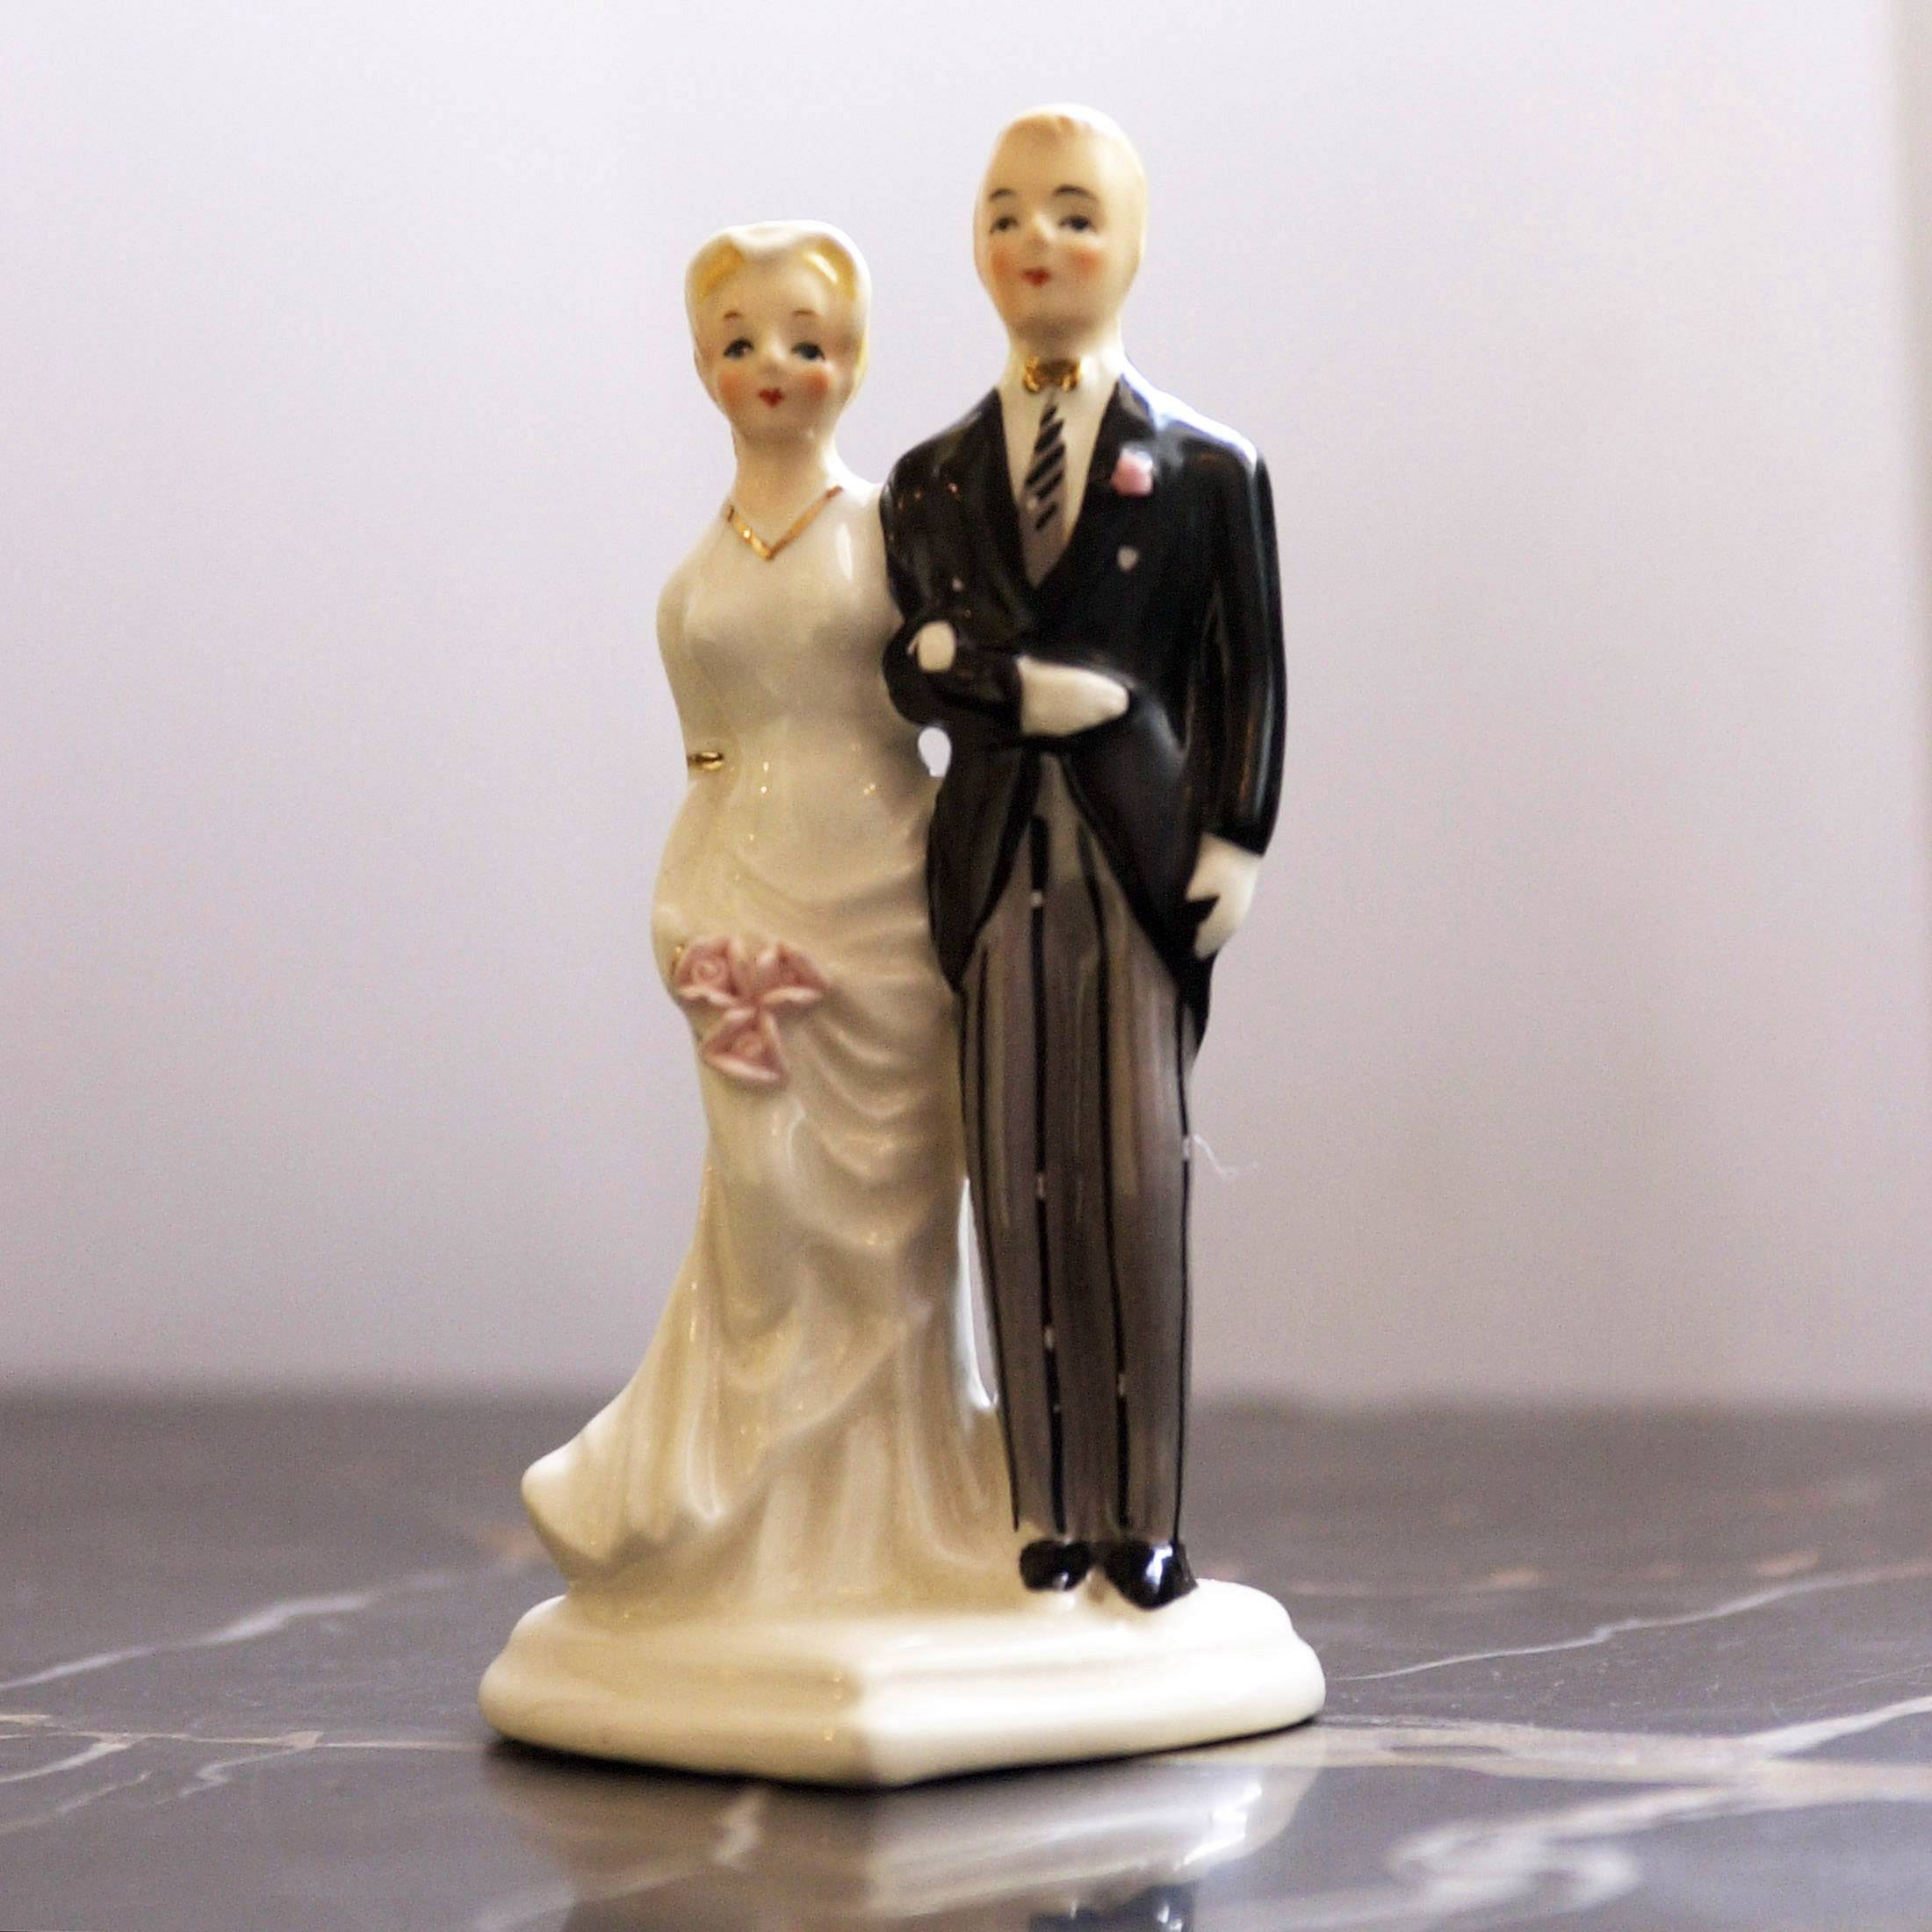 This bride-and-groom topper adorned a wedding cake from a generation ago. But not as many of those marriages are going the distance. For the first time among people older than 50, marriages ending in divorce outnumber those parted by death.